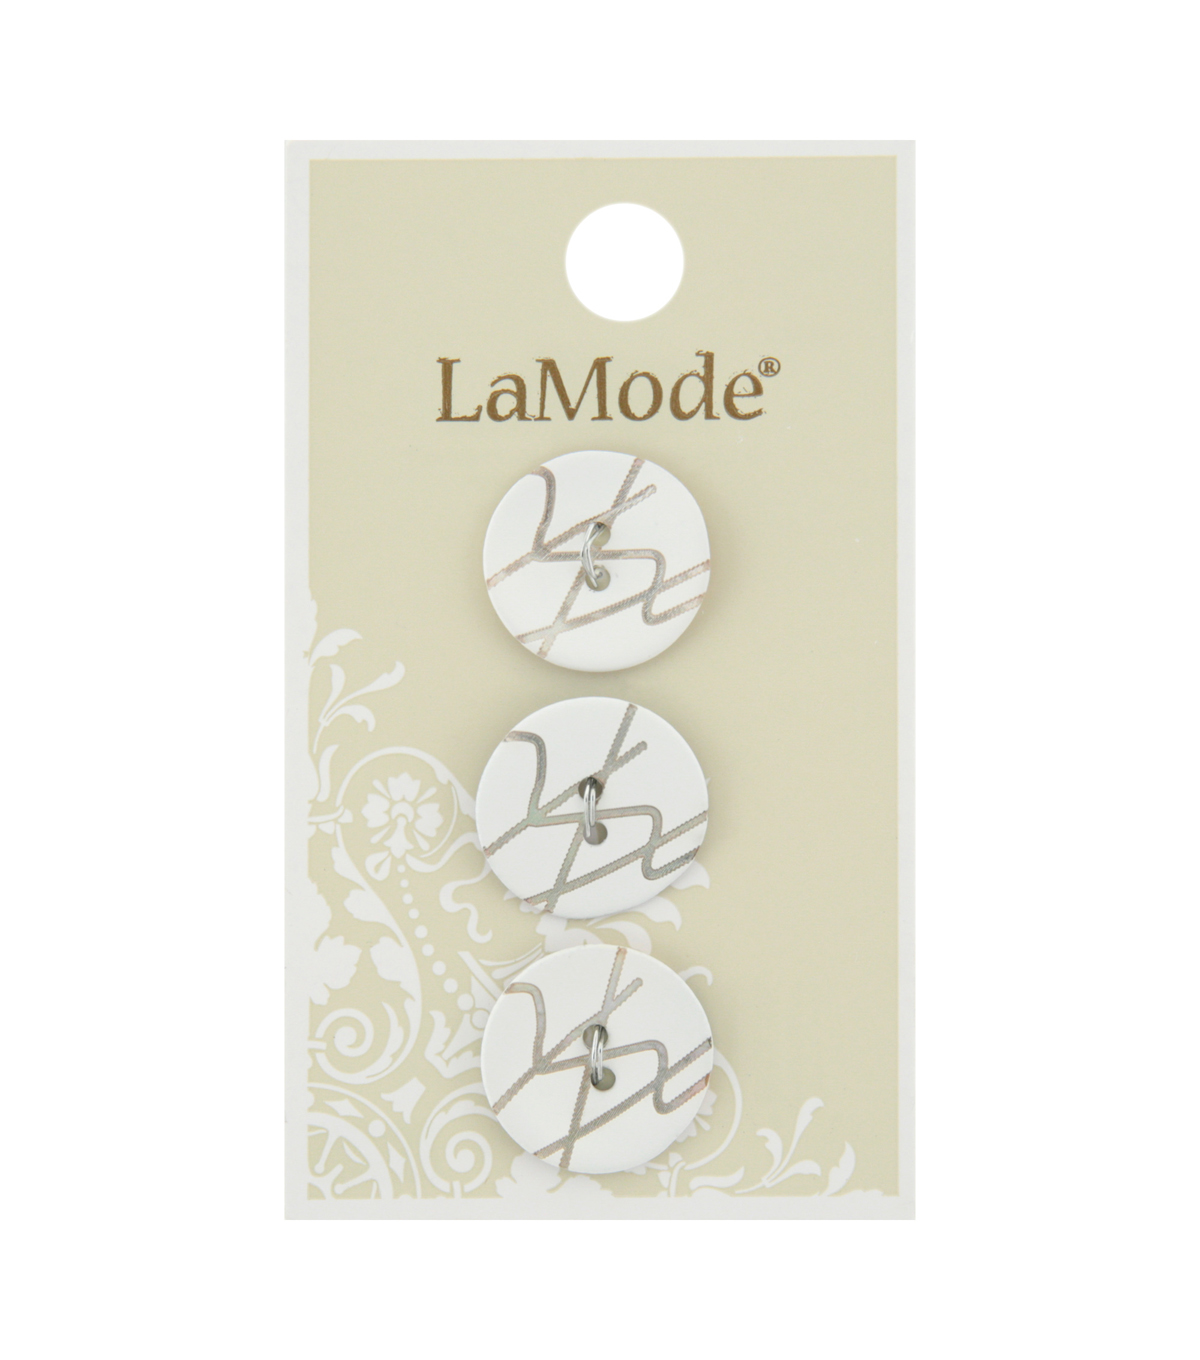 La Mode 3 pk 18 mm Agoya Shell 2 Hole Buttons-Zig Zag Design on White